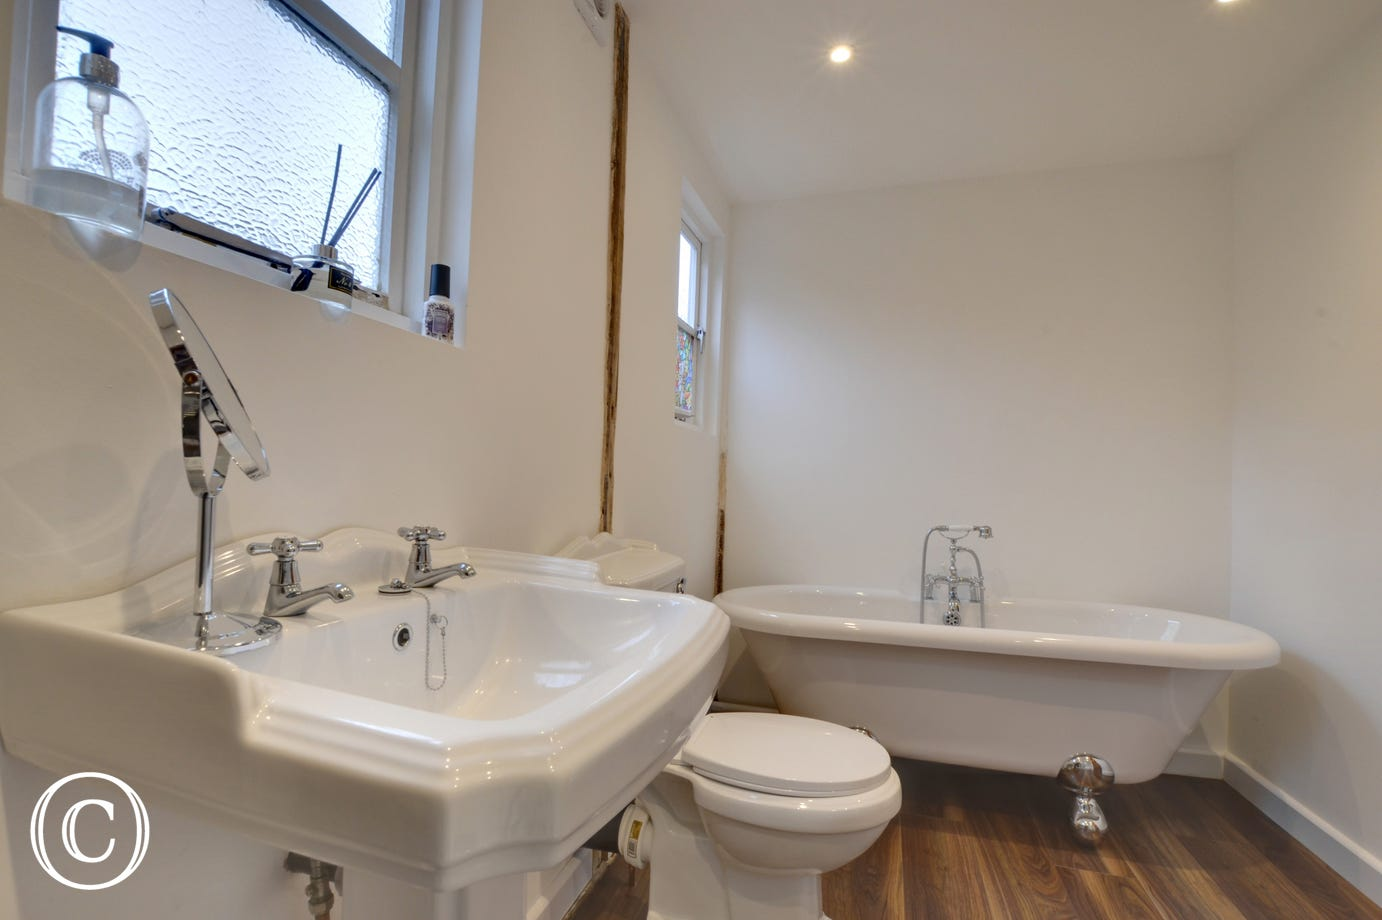 RH1159 - Bathroom - View 2